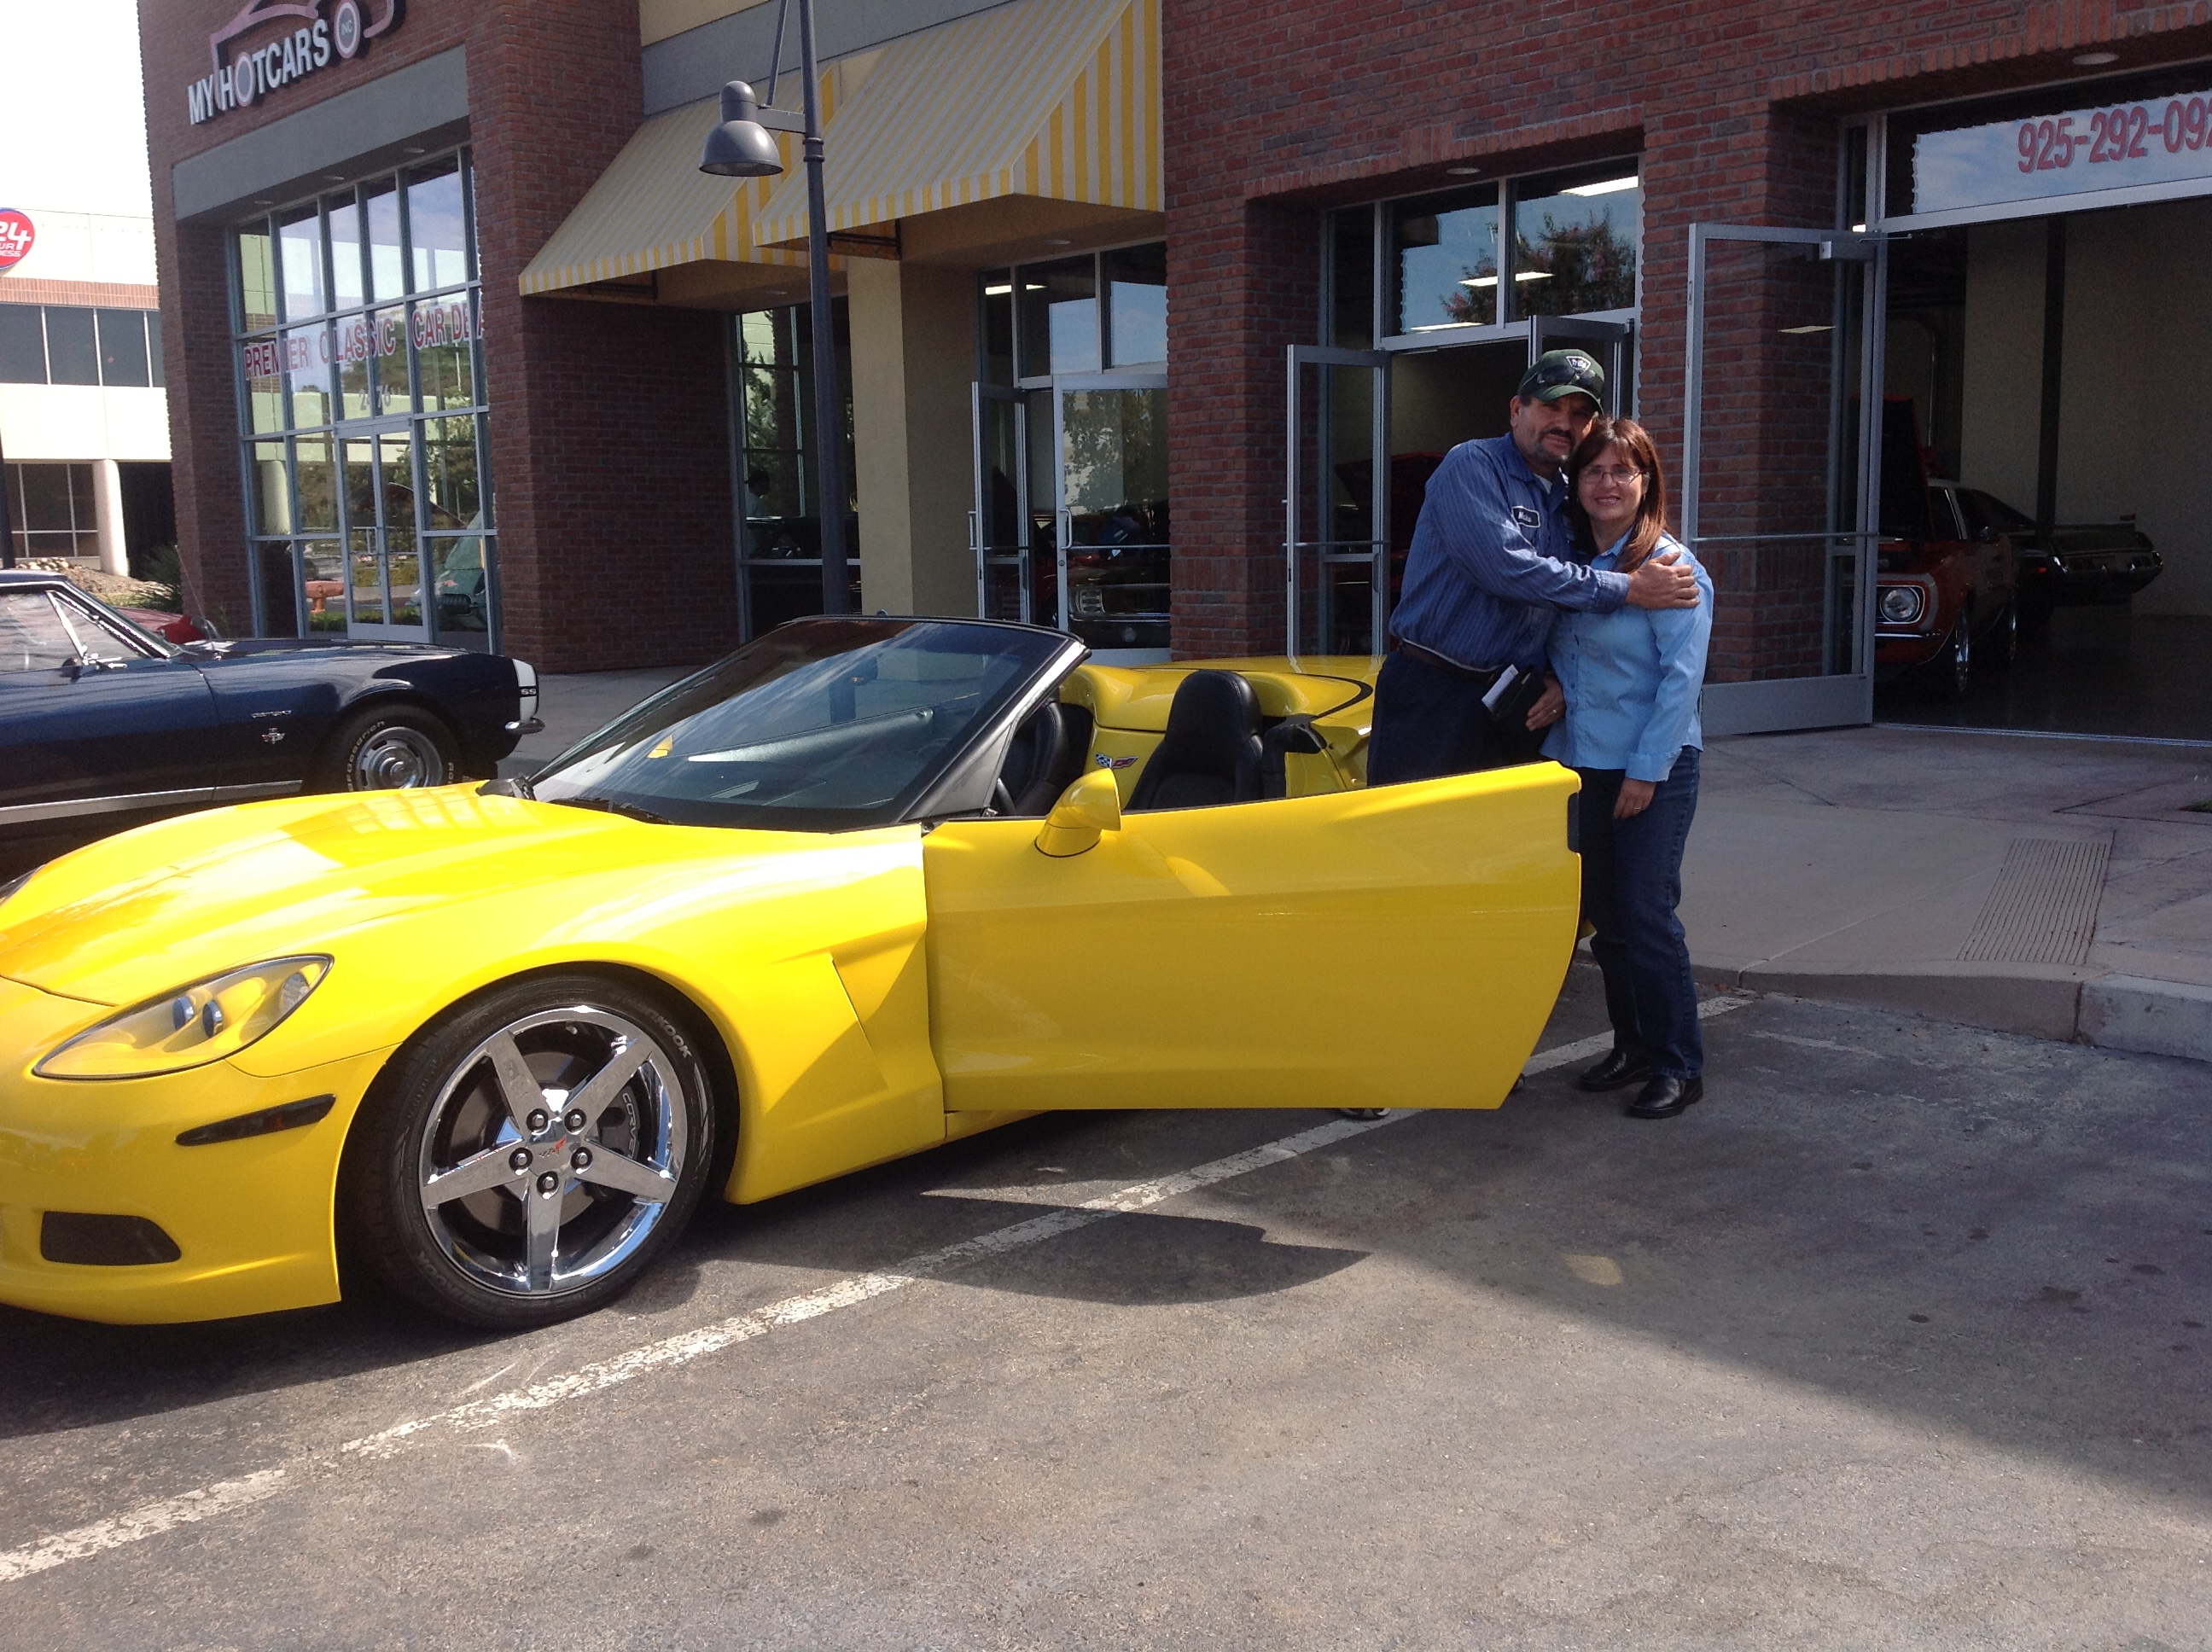 Miguel and Ana - 2008 Chevrolet Corvette Roadster